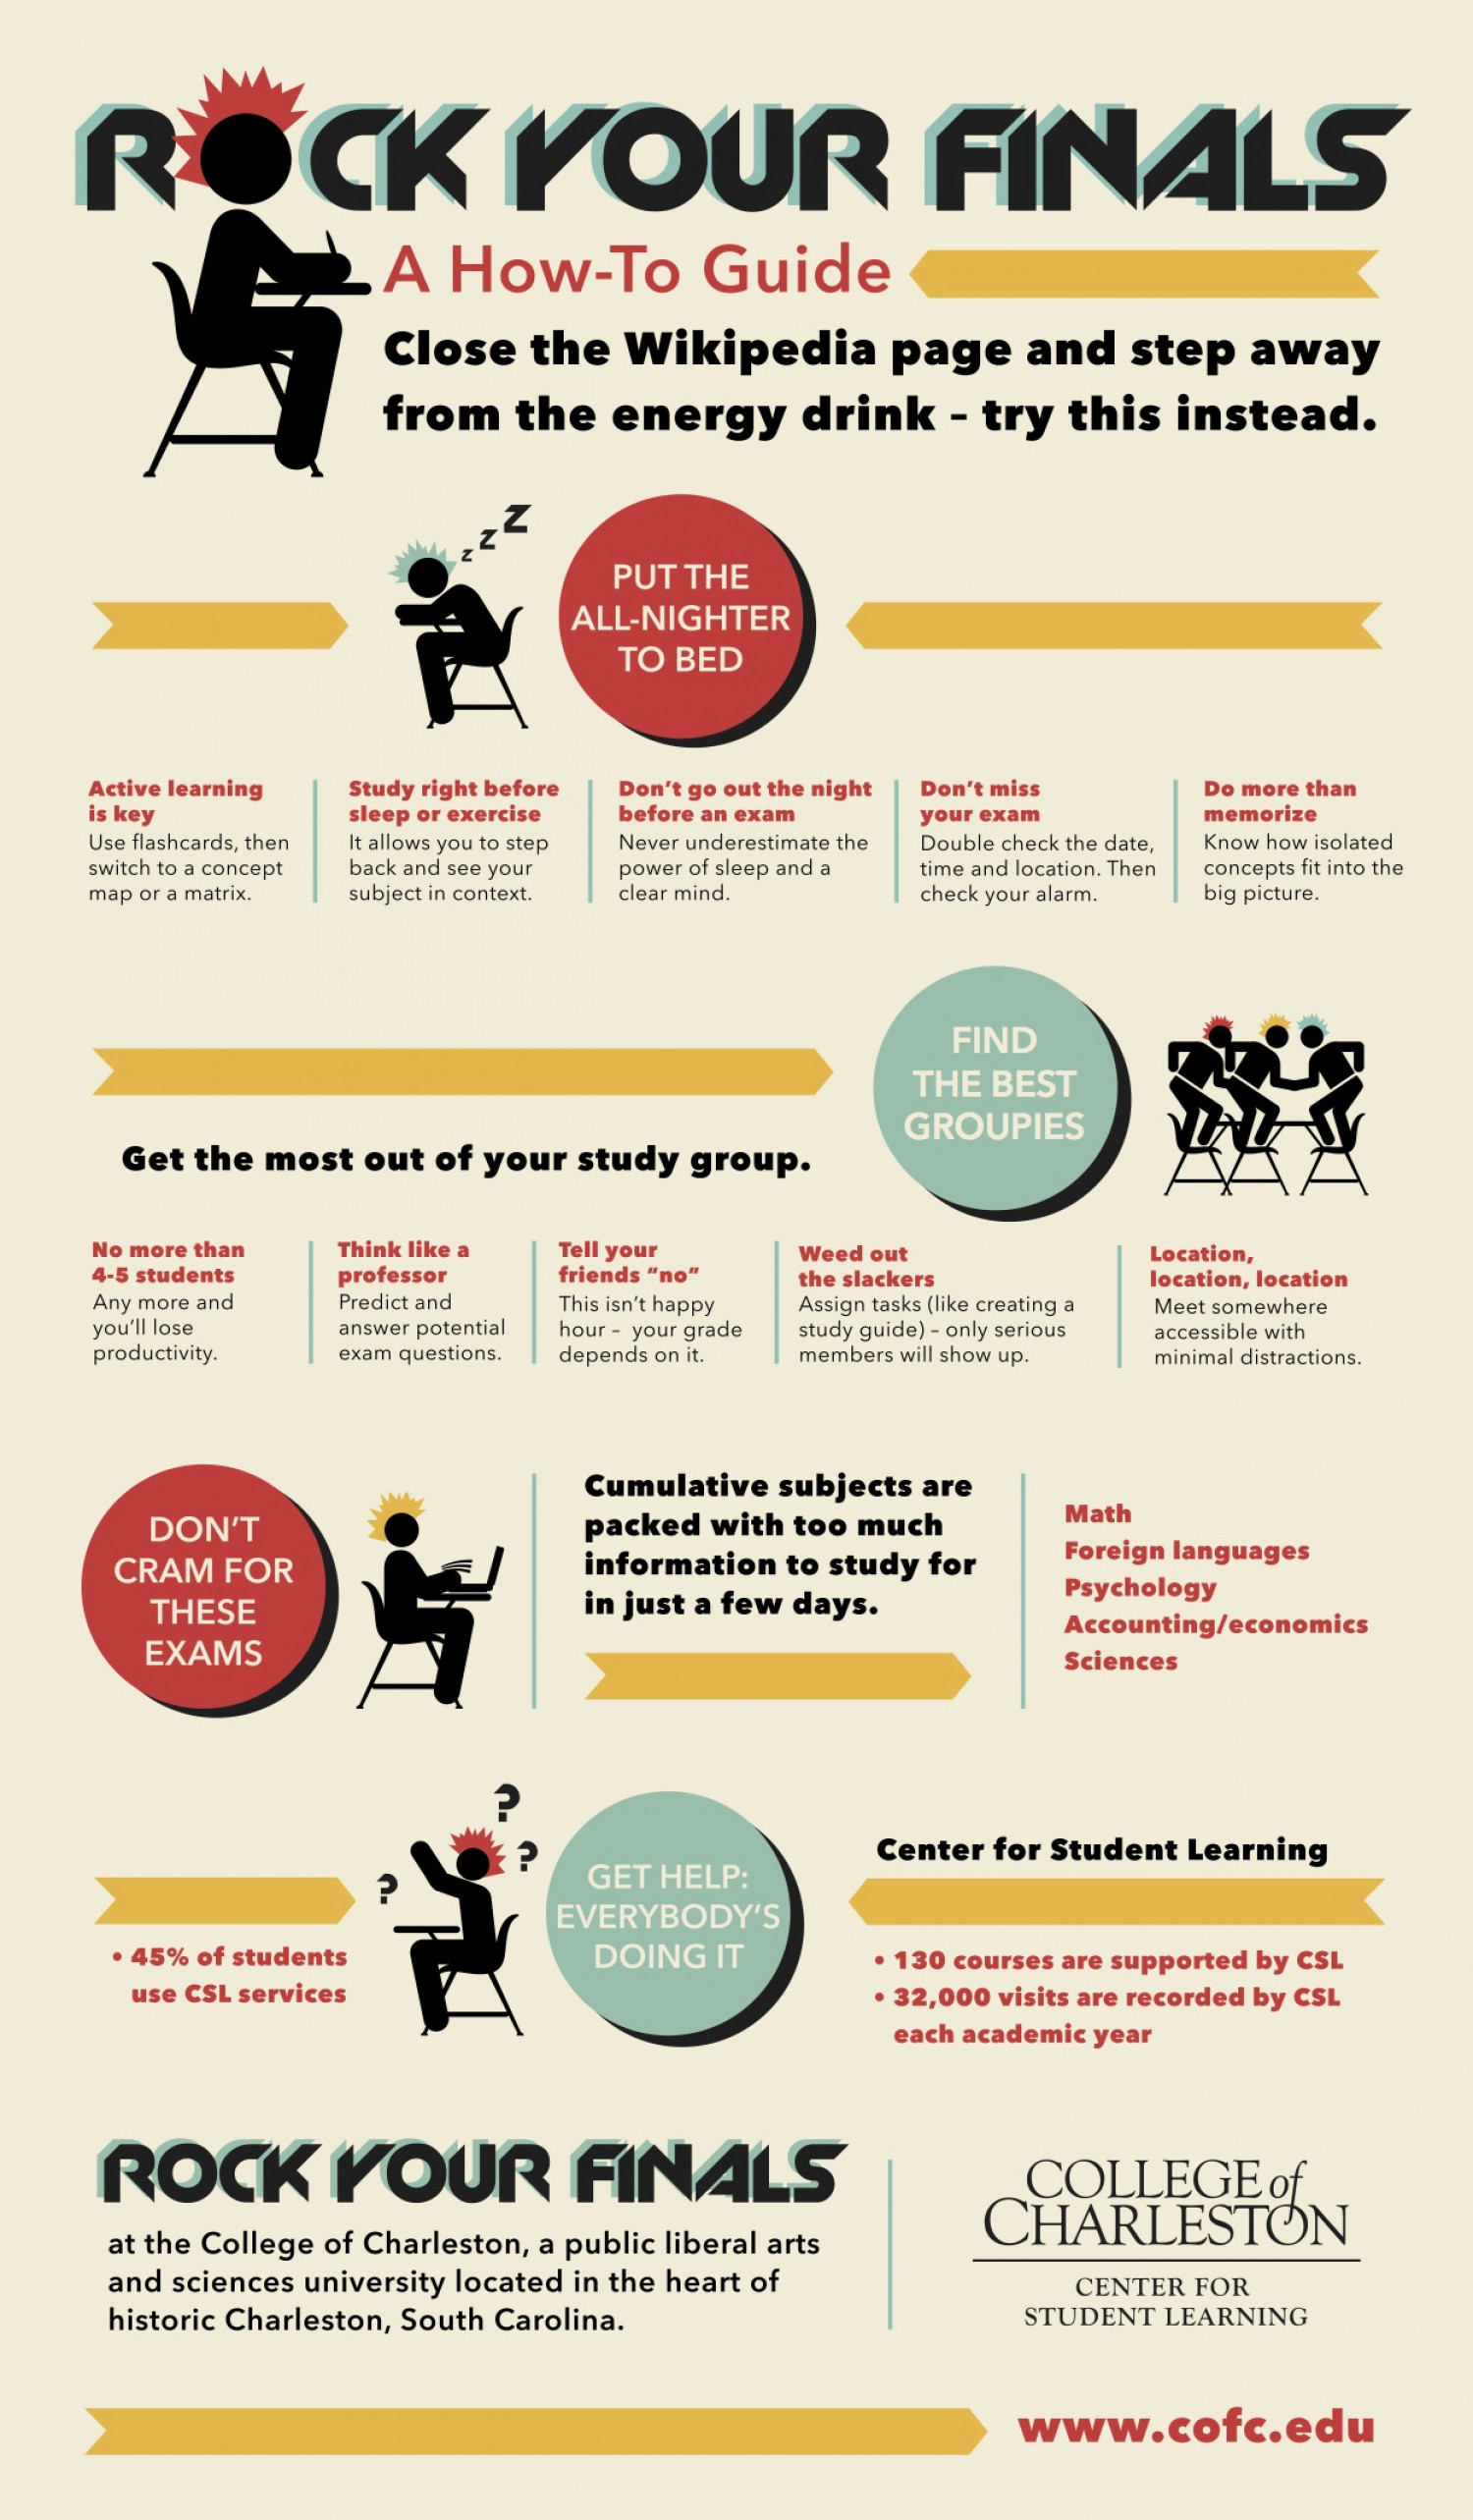 Rock Your Finals - a How-To Guide Infographic